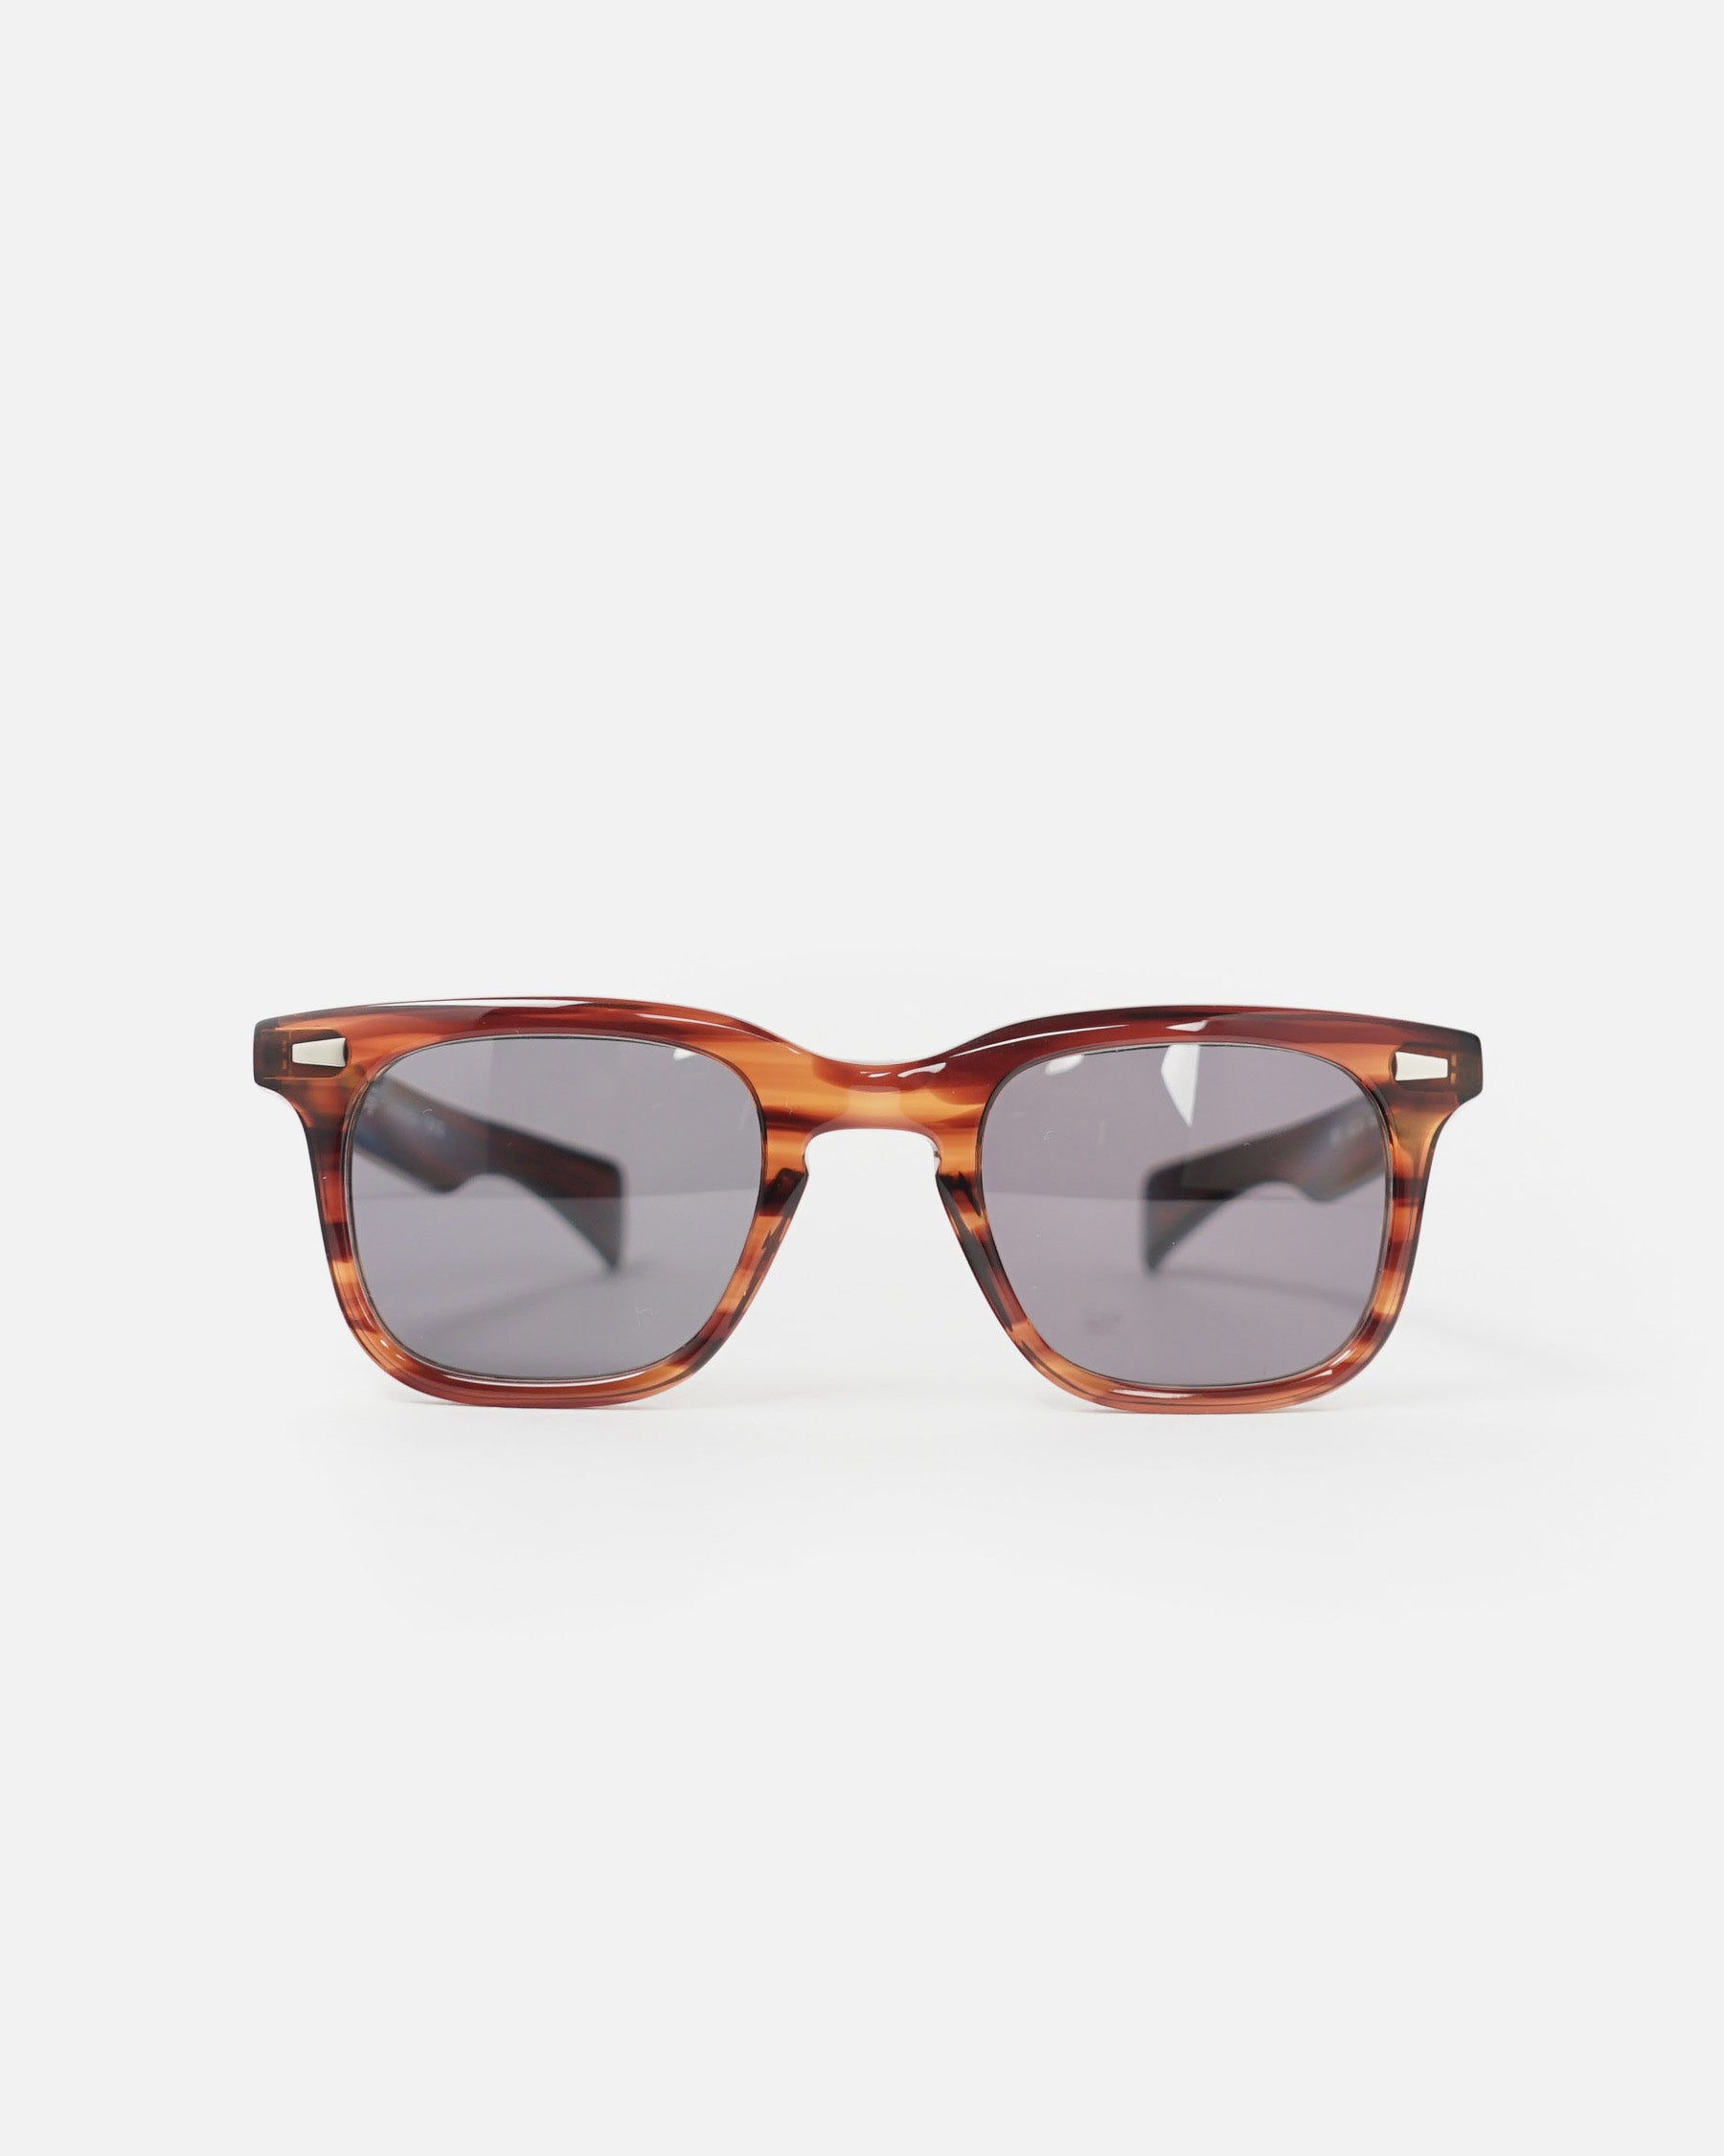 SKY Sunglasses Brown Tortoise